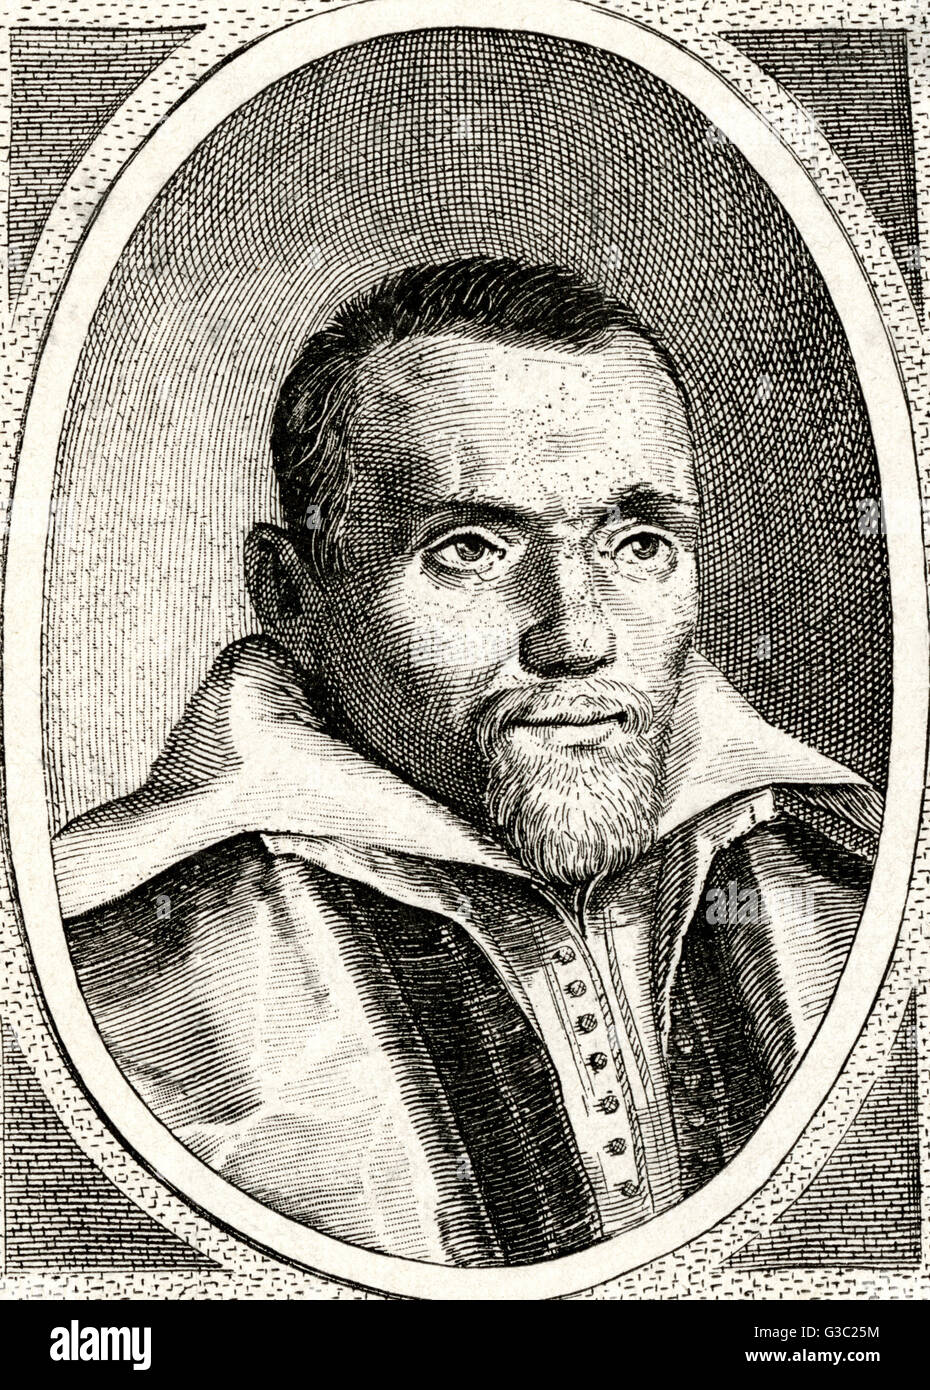 Daniel Heinsius (1580-1655) - Dutch librarian, statesman, and was one of the most famous scholars of the Dutch Renaissance. - Stock Image